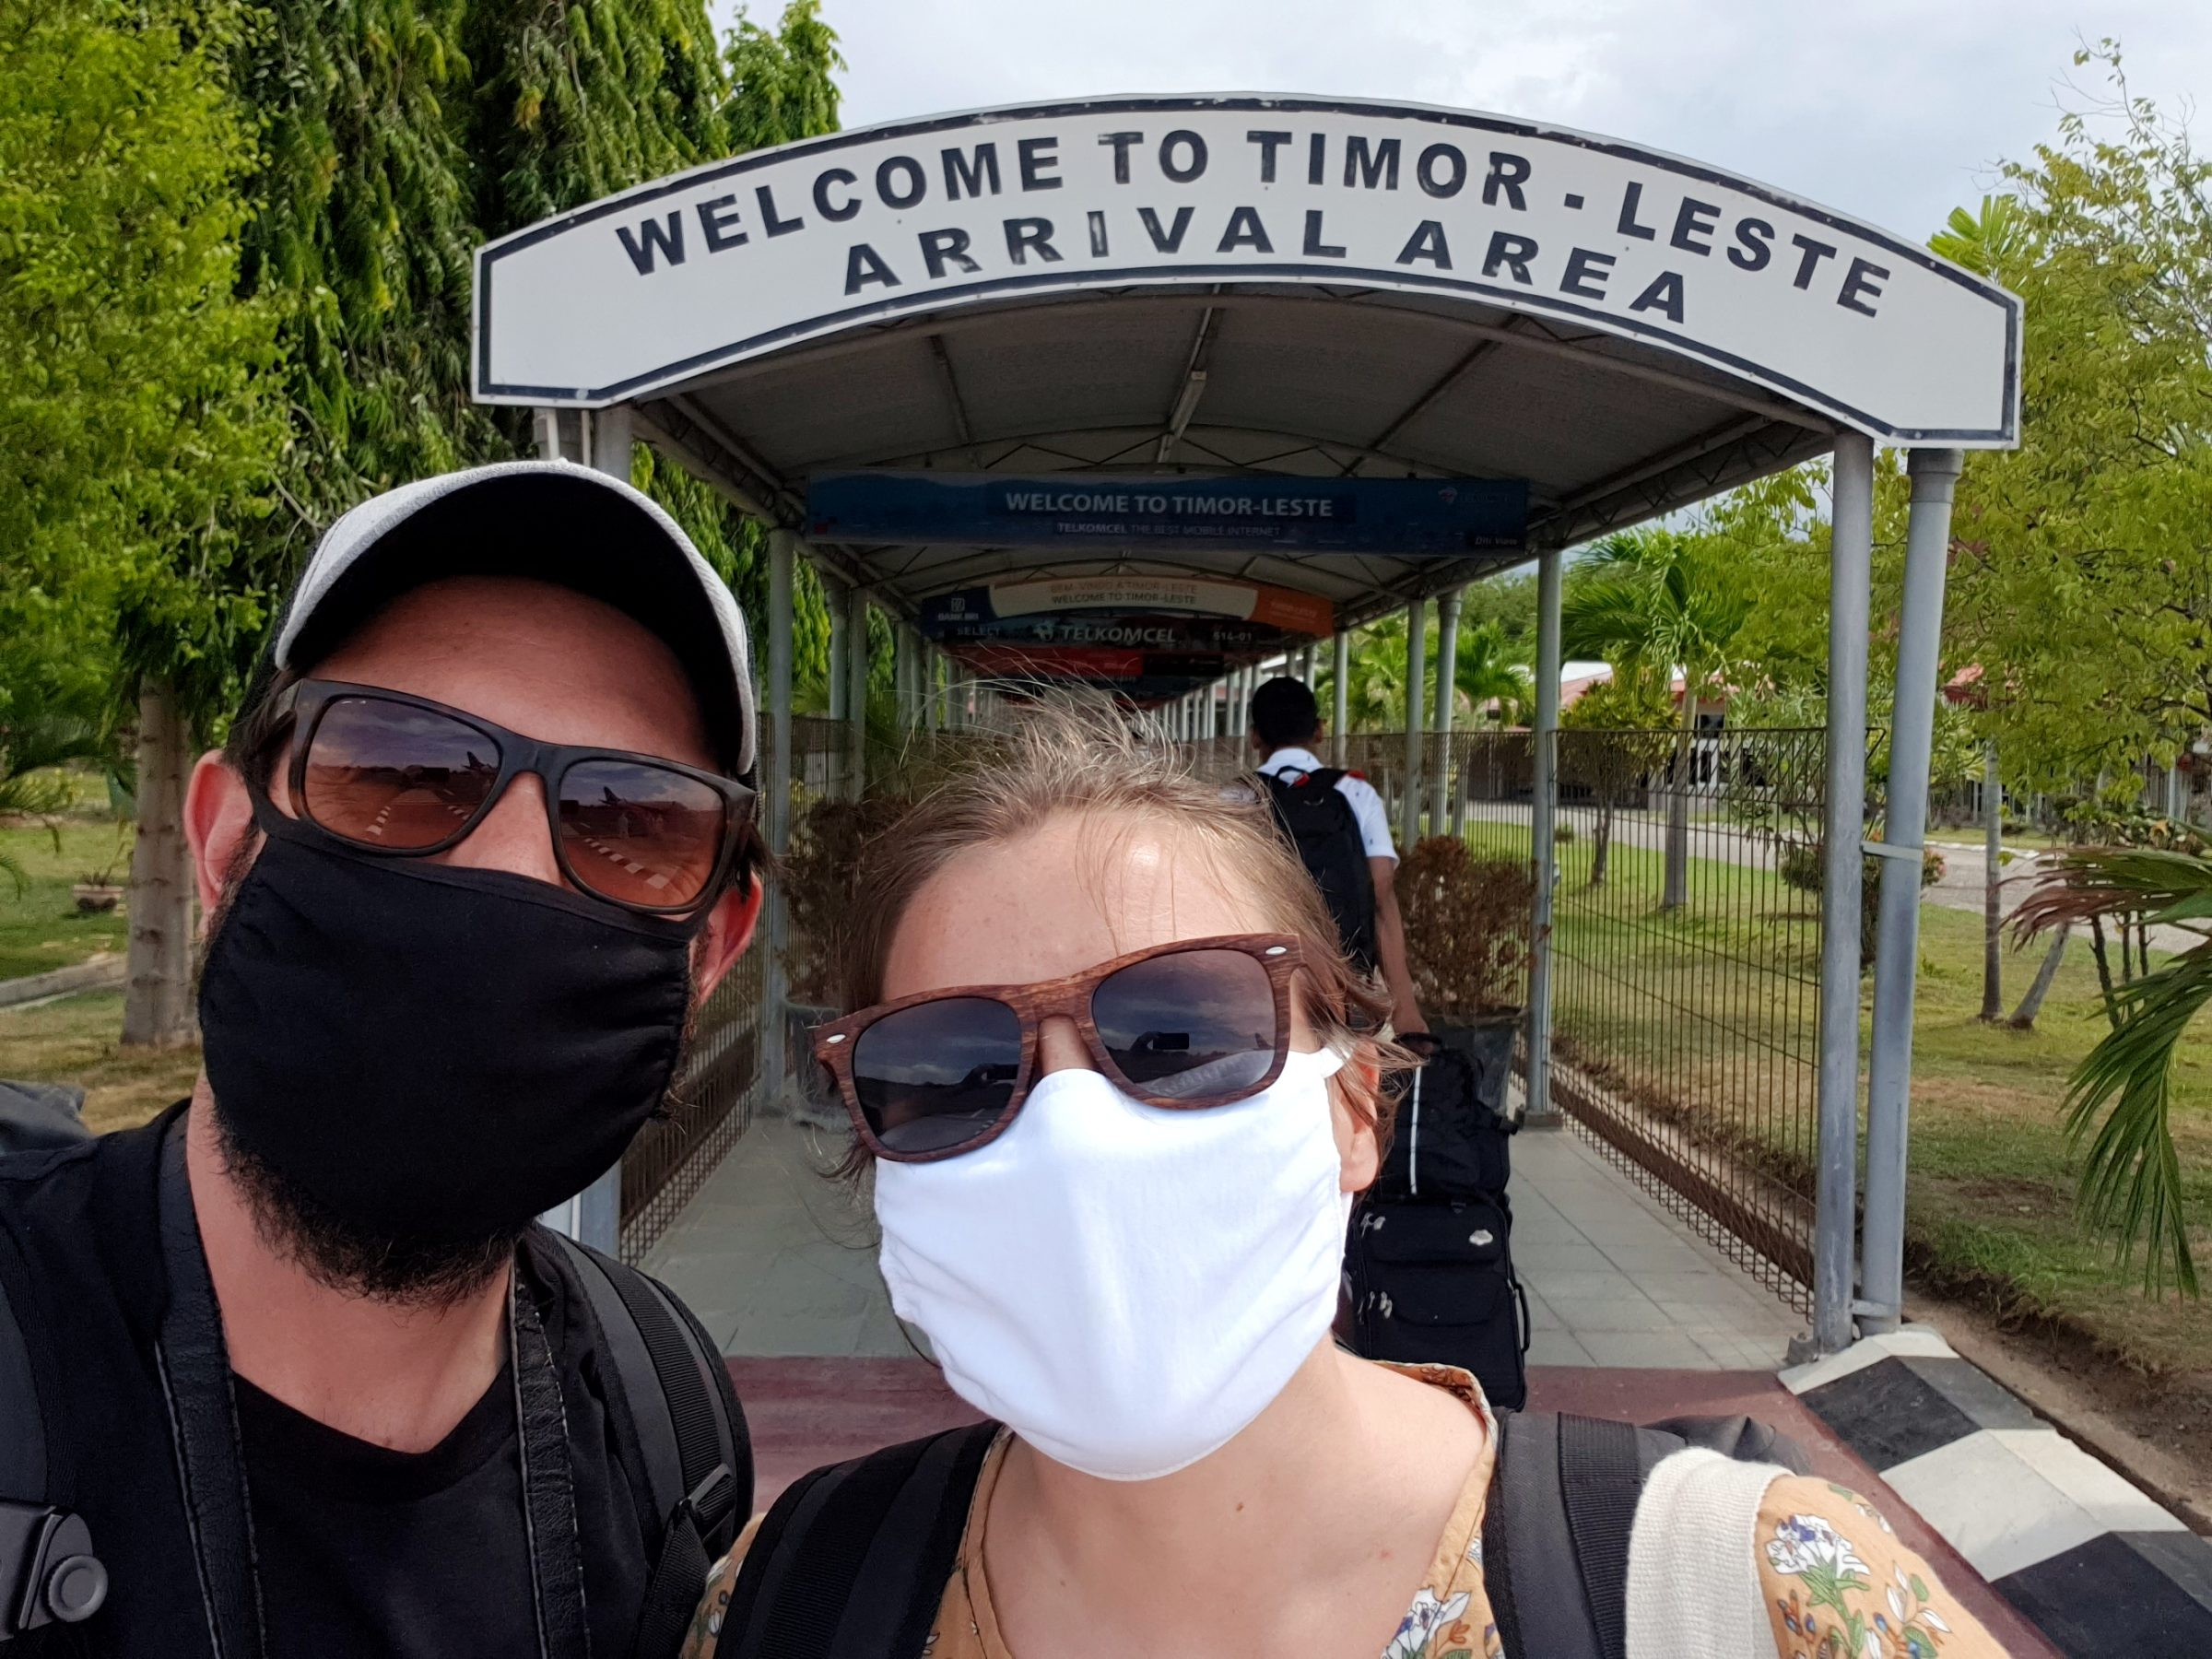 We're making OUR WAY BACK to Timor Leste after repatriation home to New Zealand earlier in the year